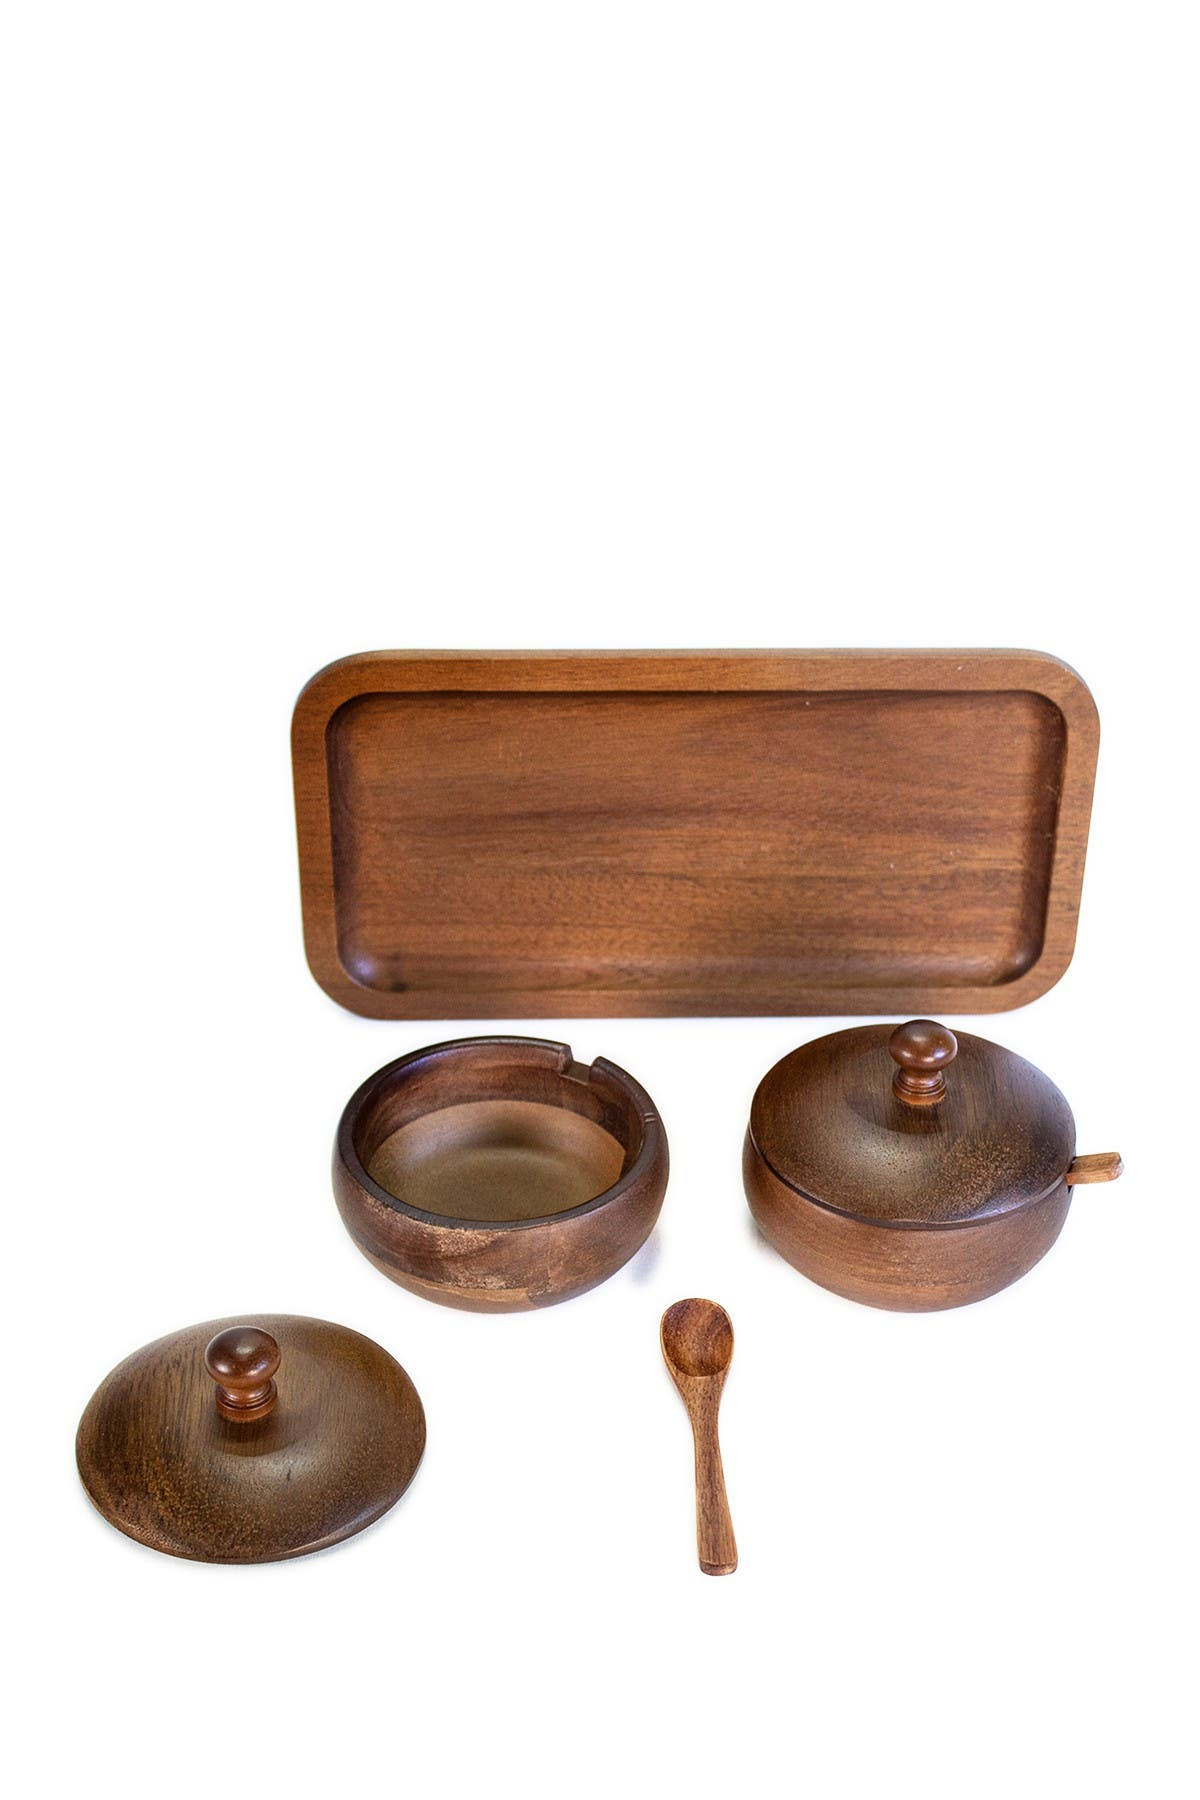 Image of BergHOFF Acacia Wooden Spice Jar Set